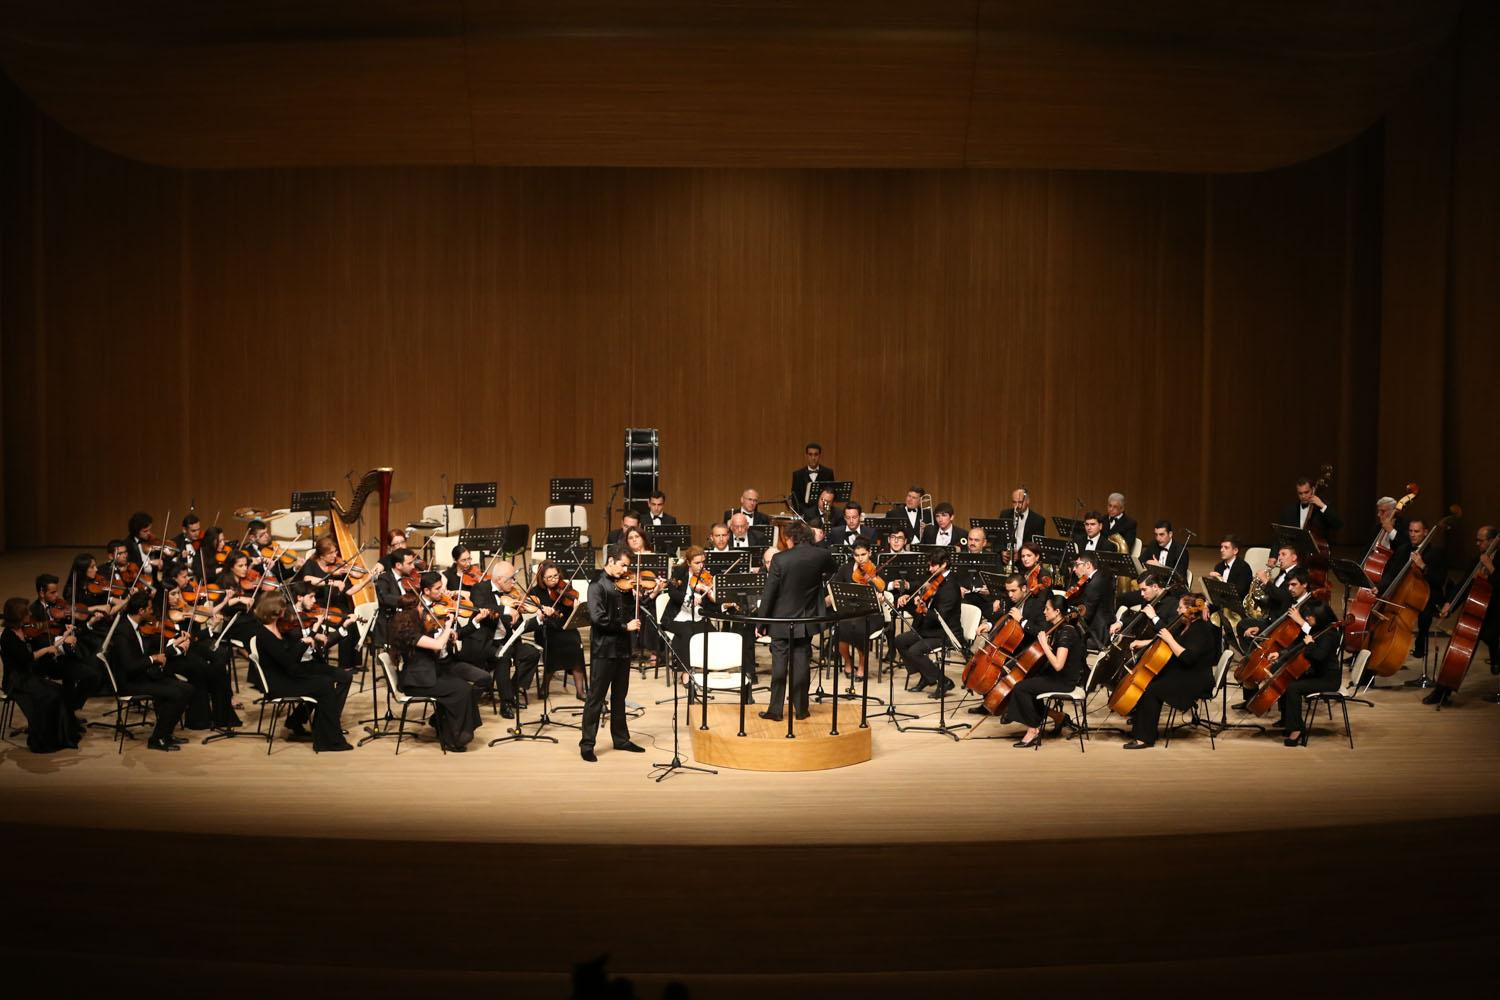 Heydar Aliyev Center hosted classical music evening